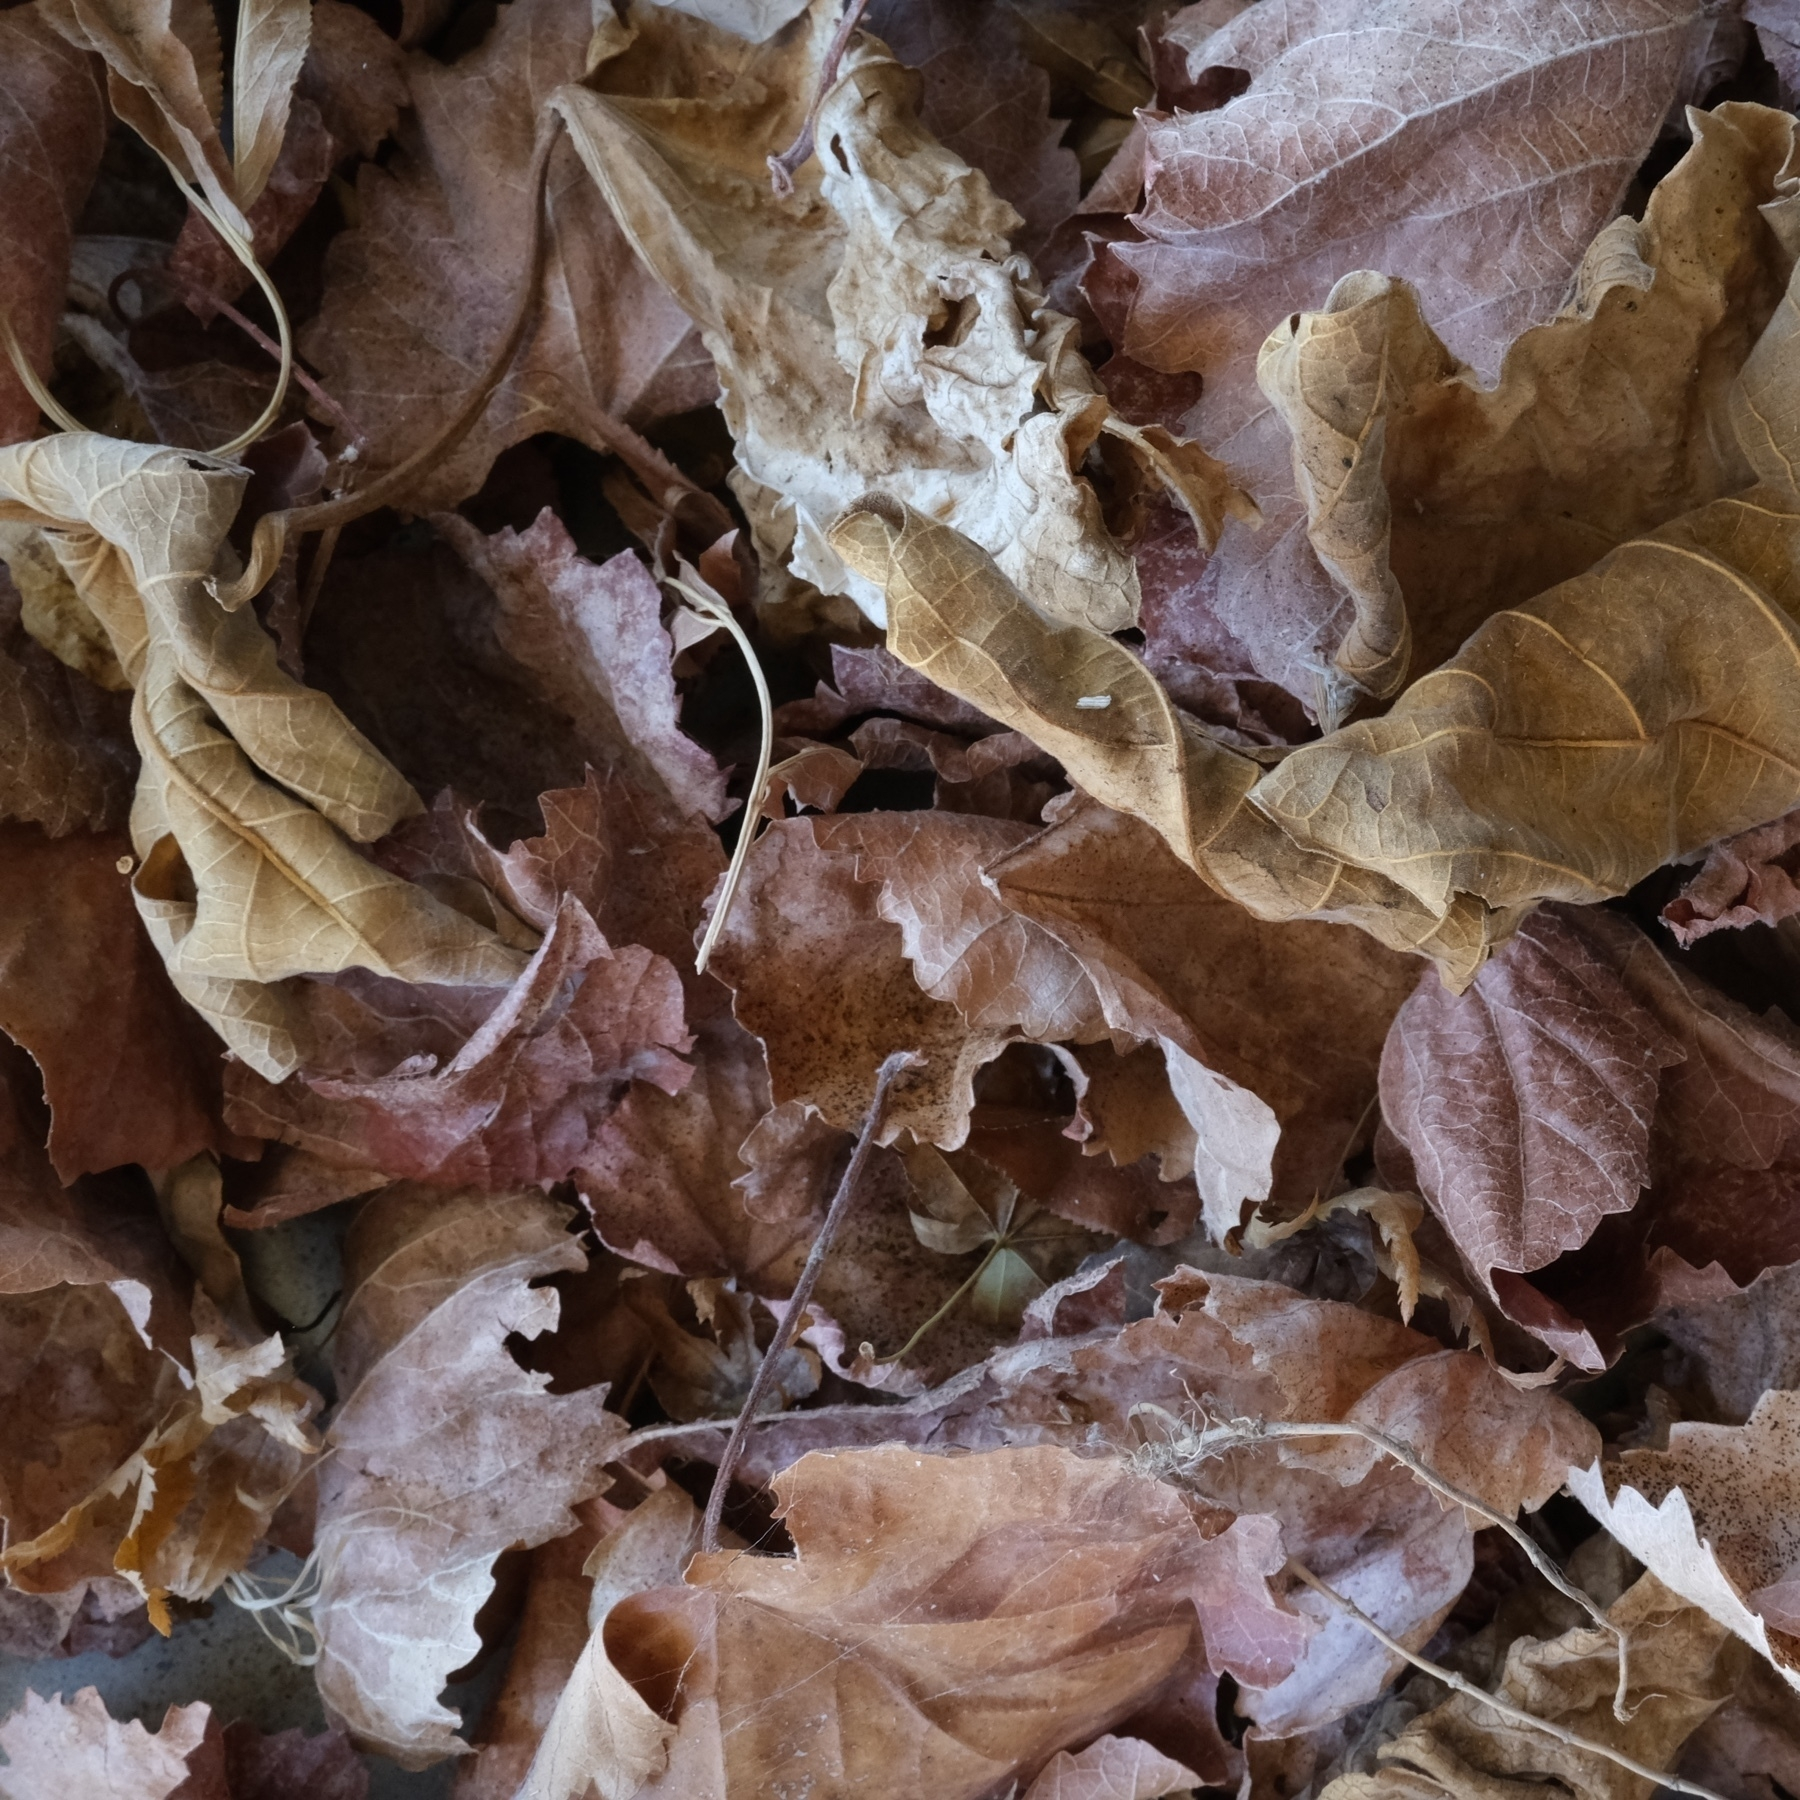 a collection of fallen grape leaves